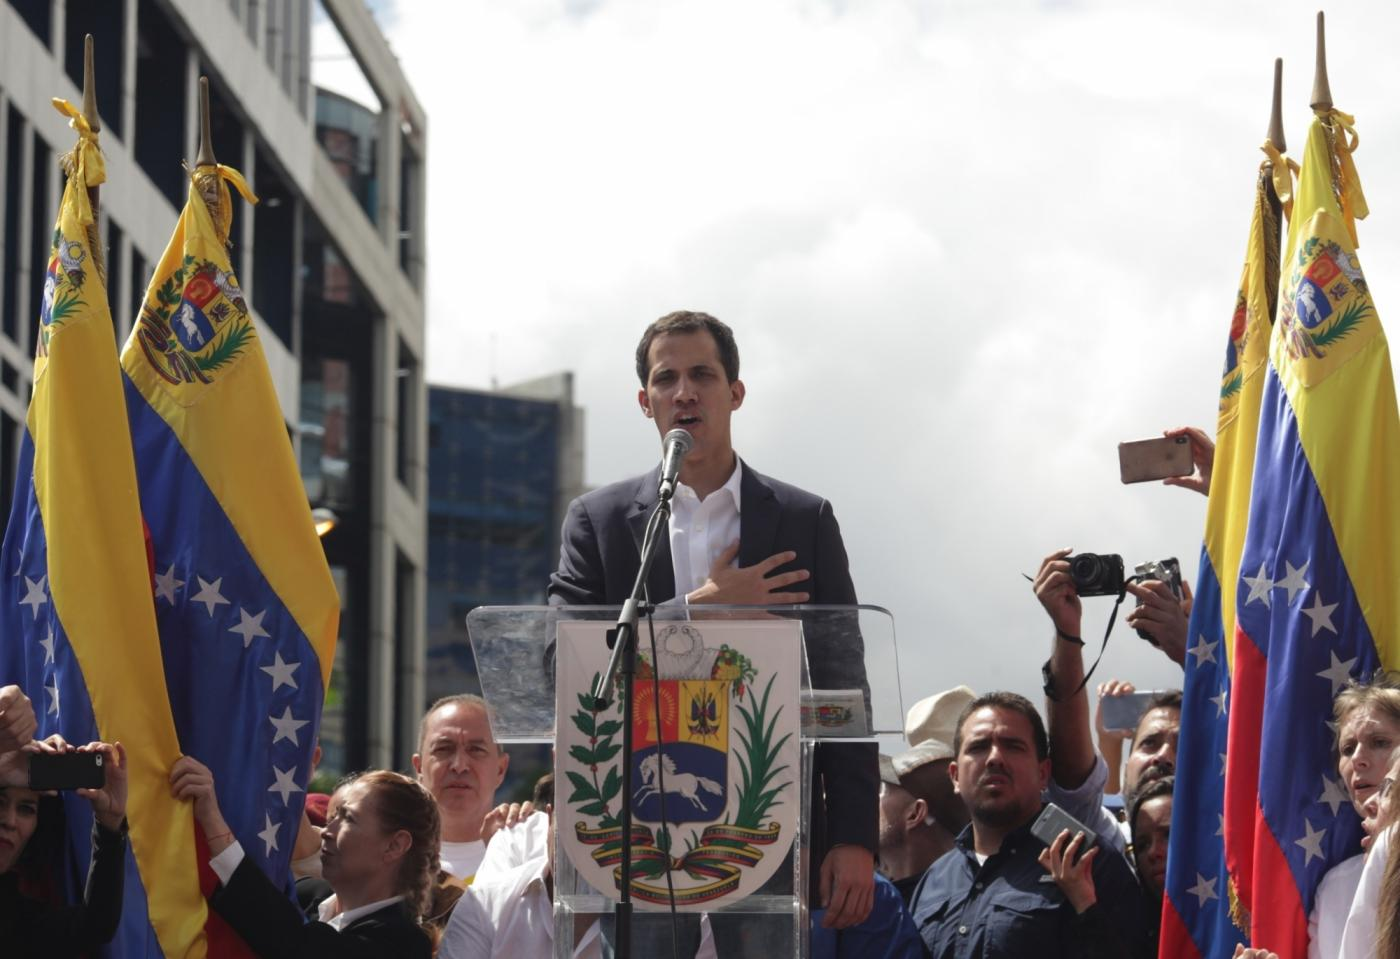 Juan Guaido (C), head of the opposition-controlled National Assembly, delivers a speech at the Francisco de Miranda avenue, in Caracas, Venezuela, on Jan. 23, 2019. Venezuelan President Nicolas Maduro on Wednesday announced he was severing